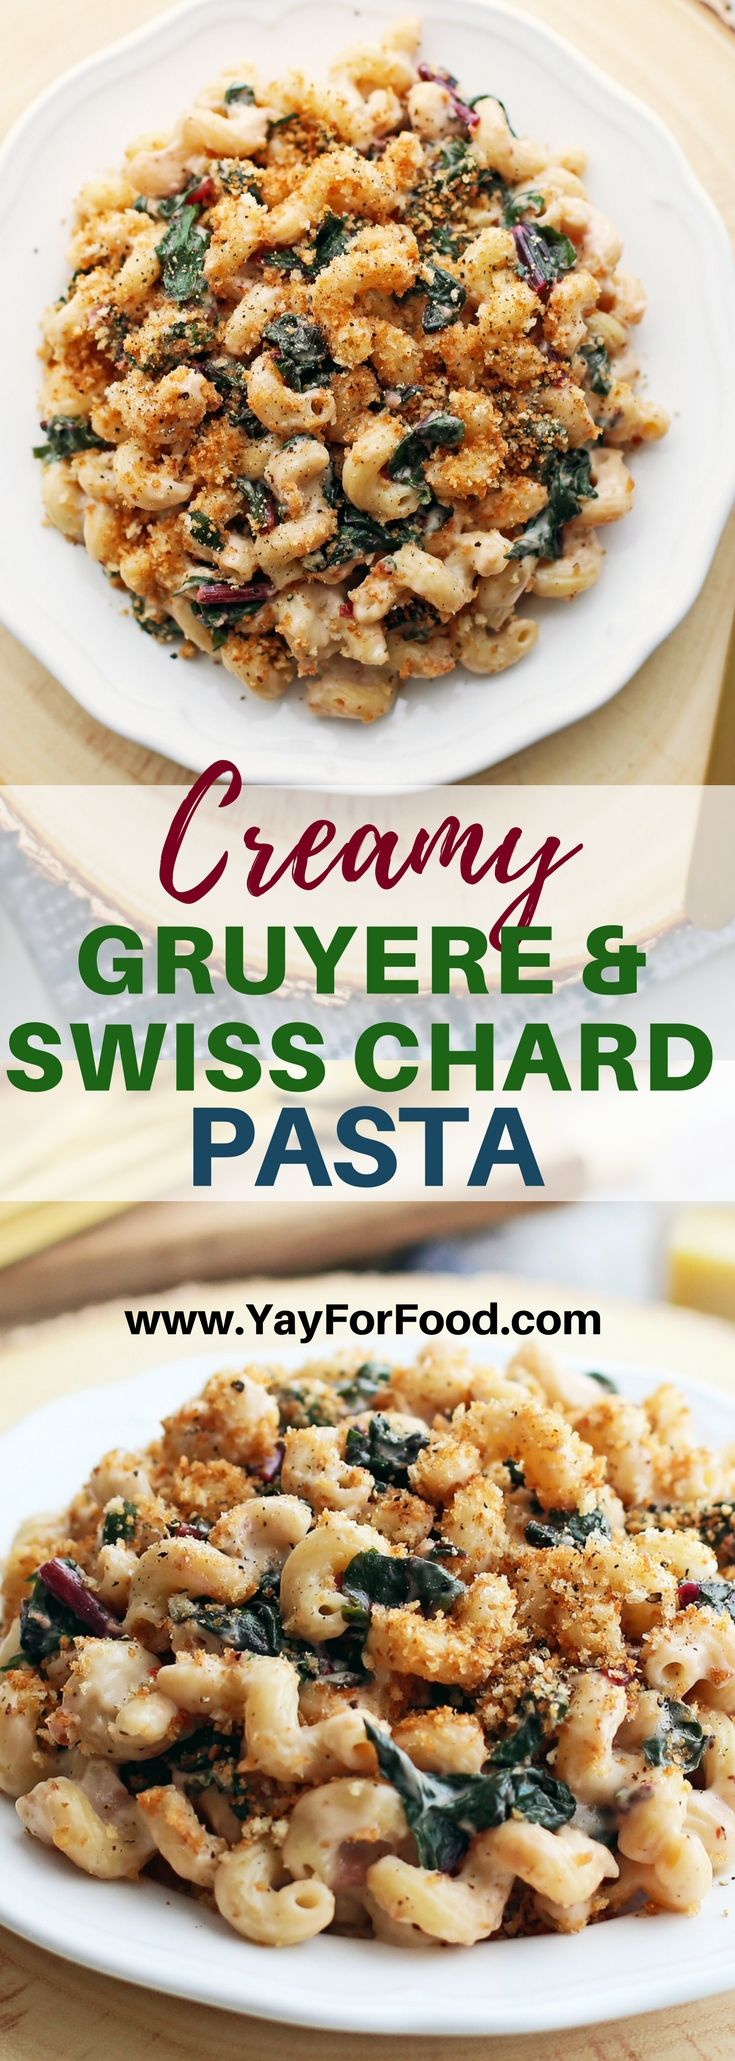 Creamy Gruyere and Swiss Chard Pasta with Toasted Panko Breadcrumbs - Comfort food alert! Check out this delicious savoury pasta dish featuring quick sautéed Swiss chard, homemade cheese sauce, and crunchy Panko breadcrumbs.